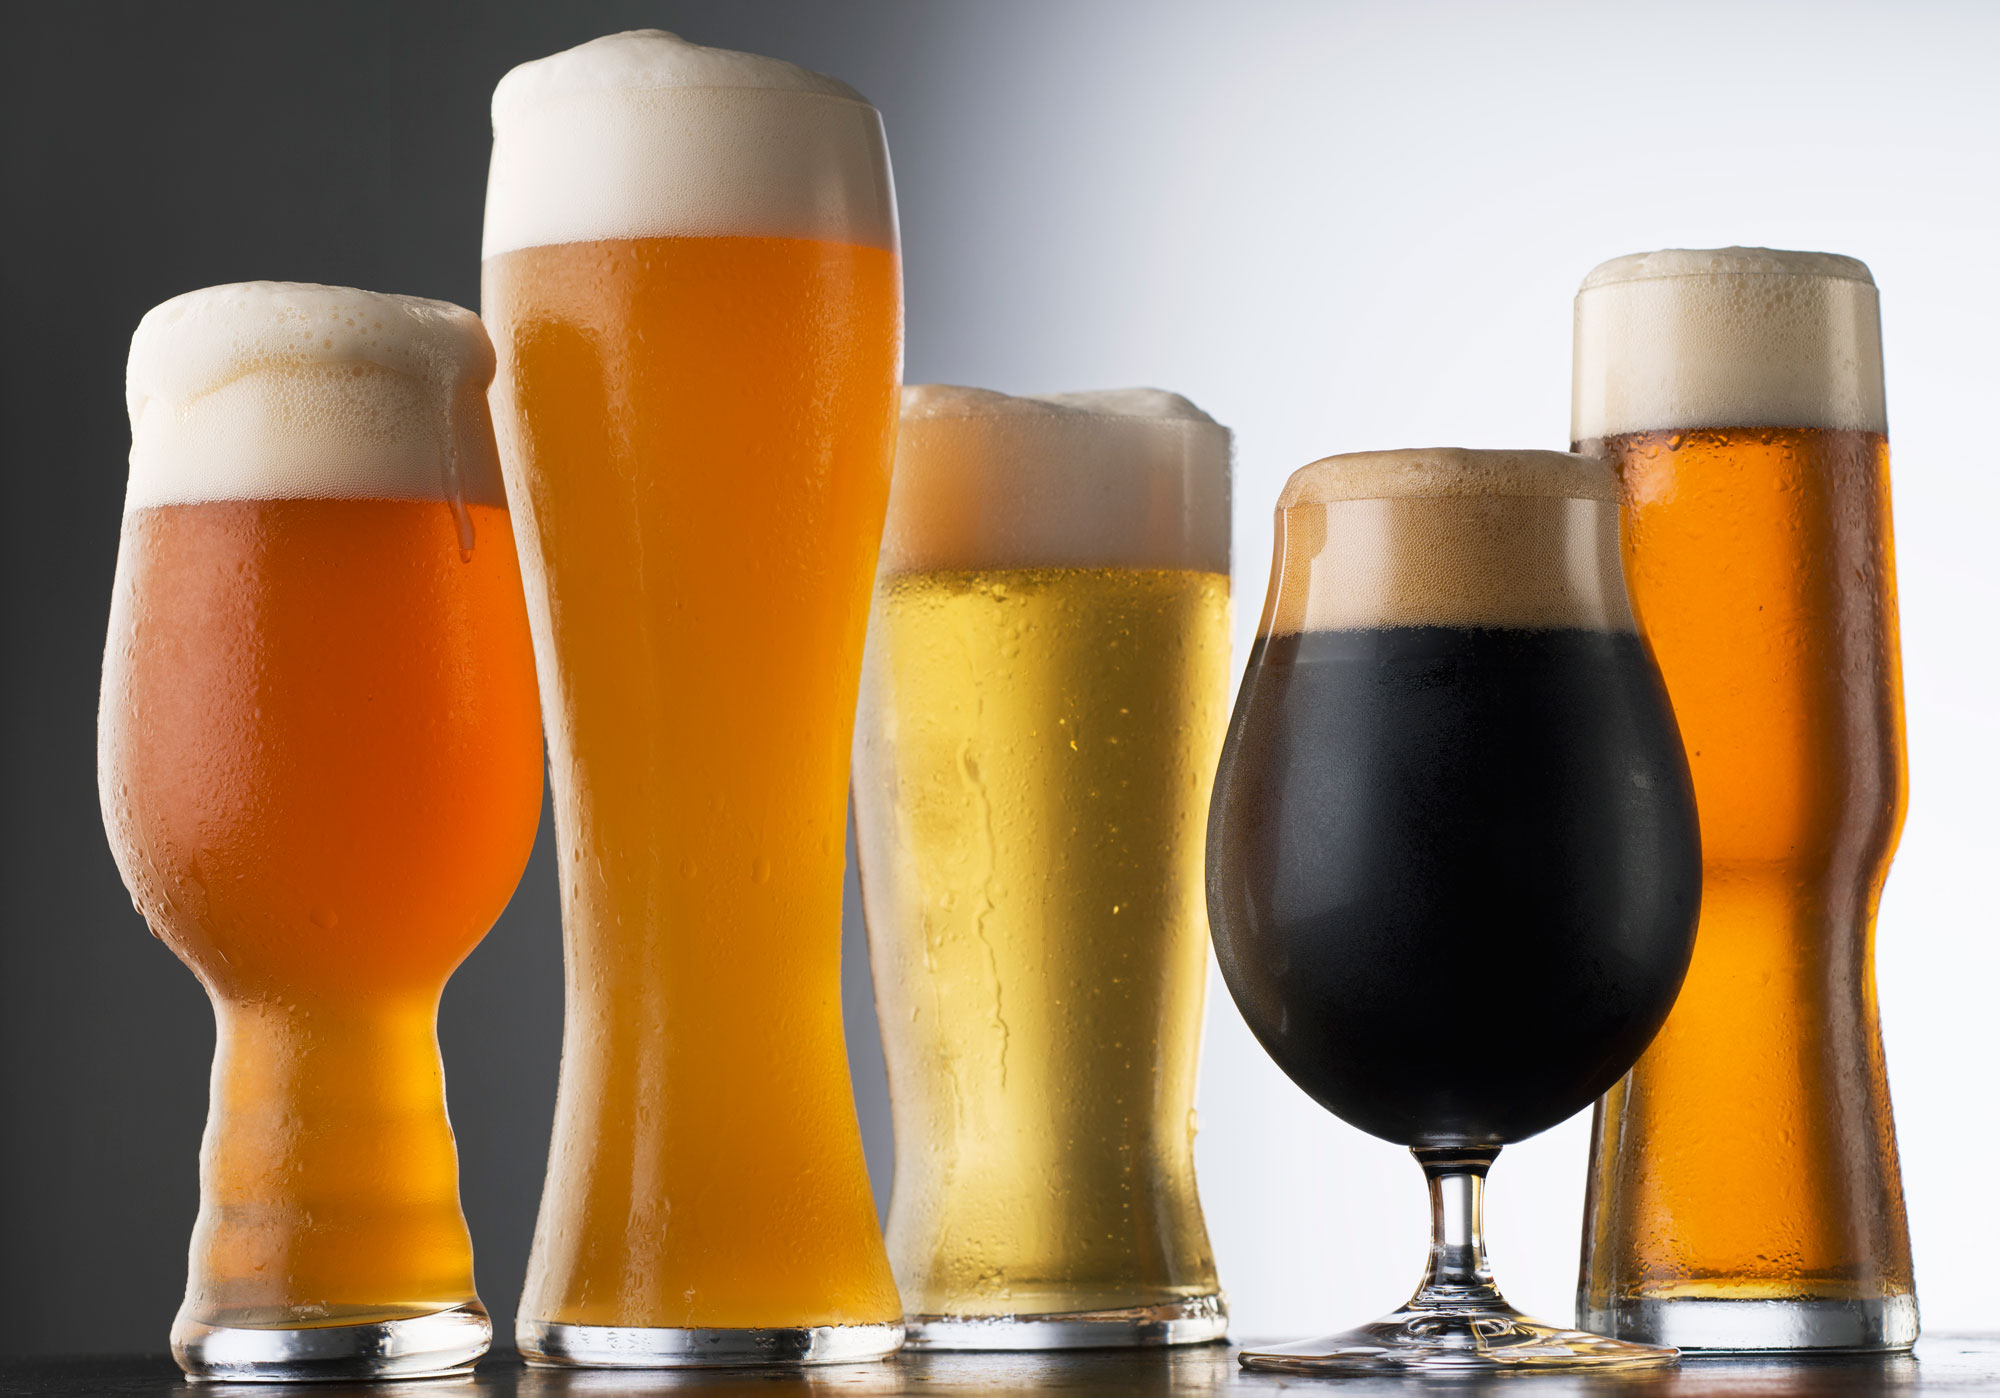 Various types of beer in glasses. GETTY IMAGES